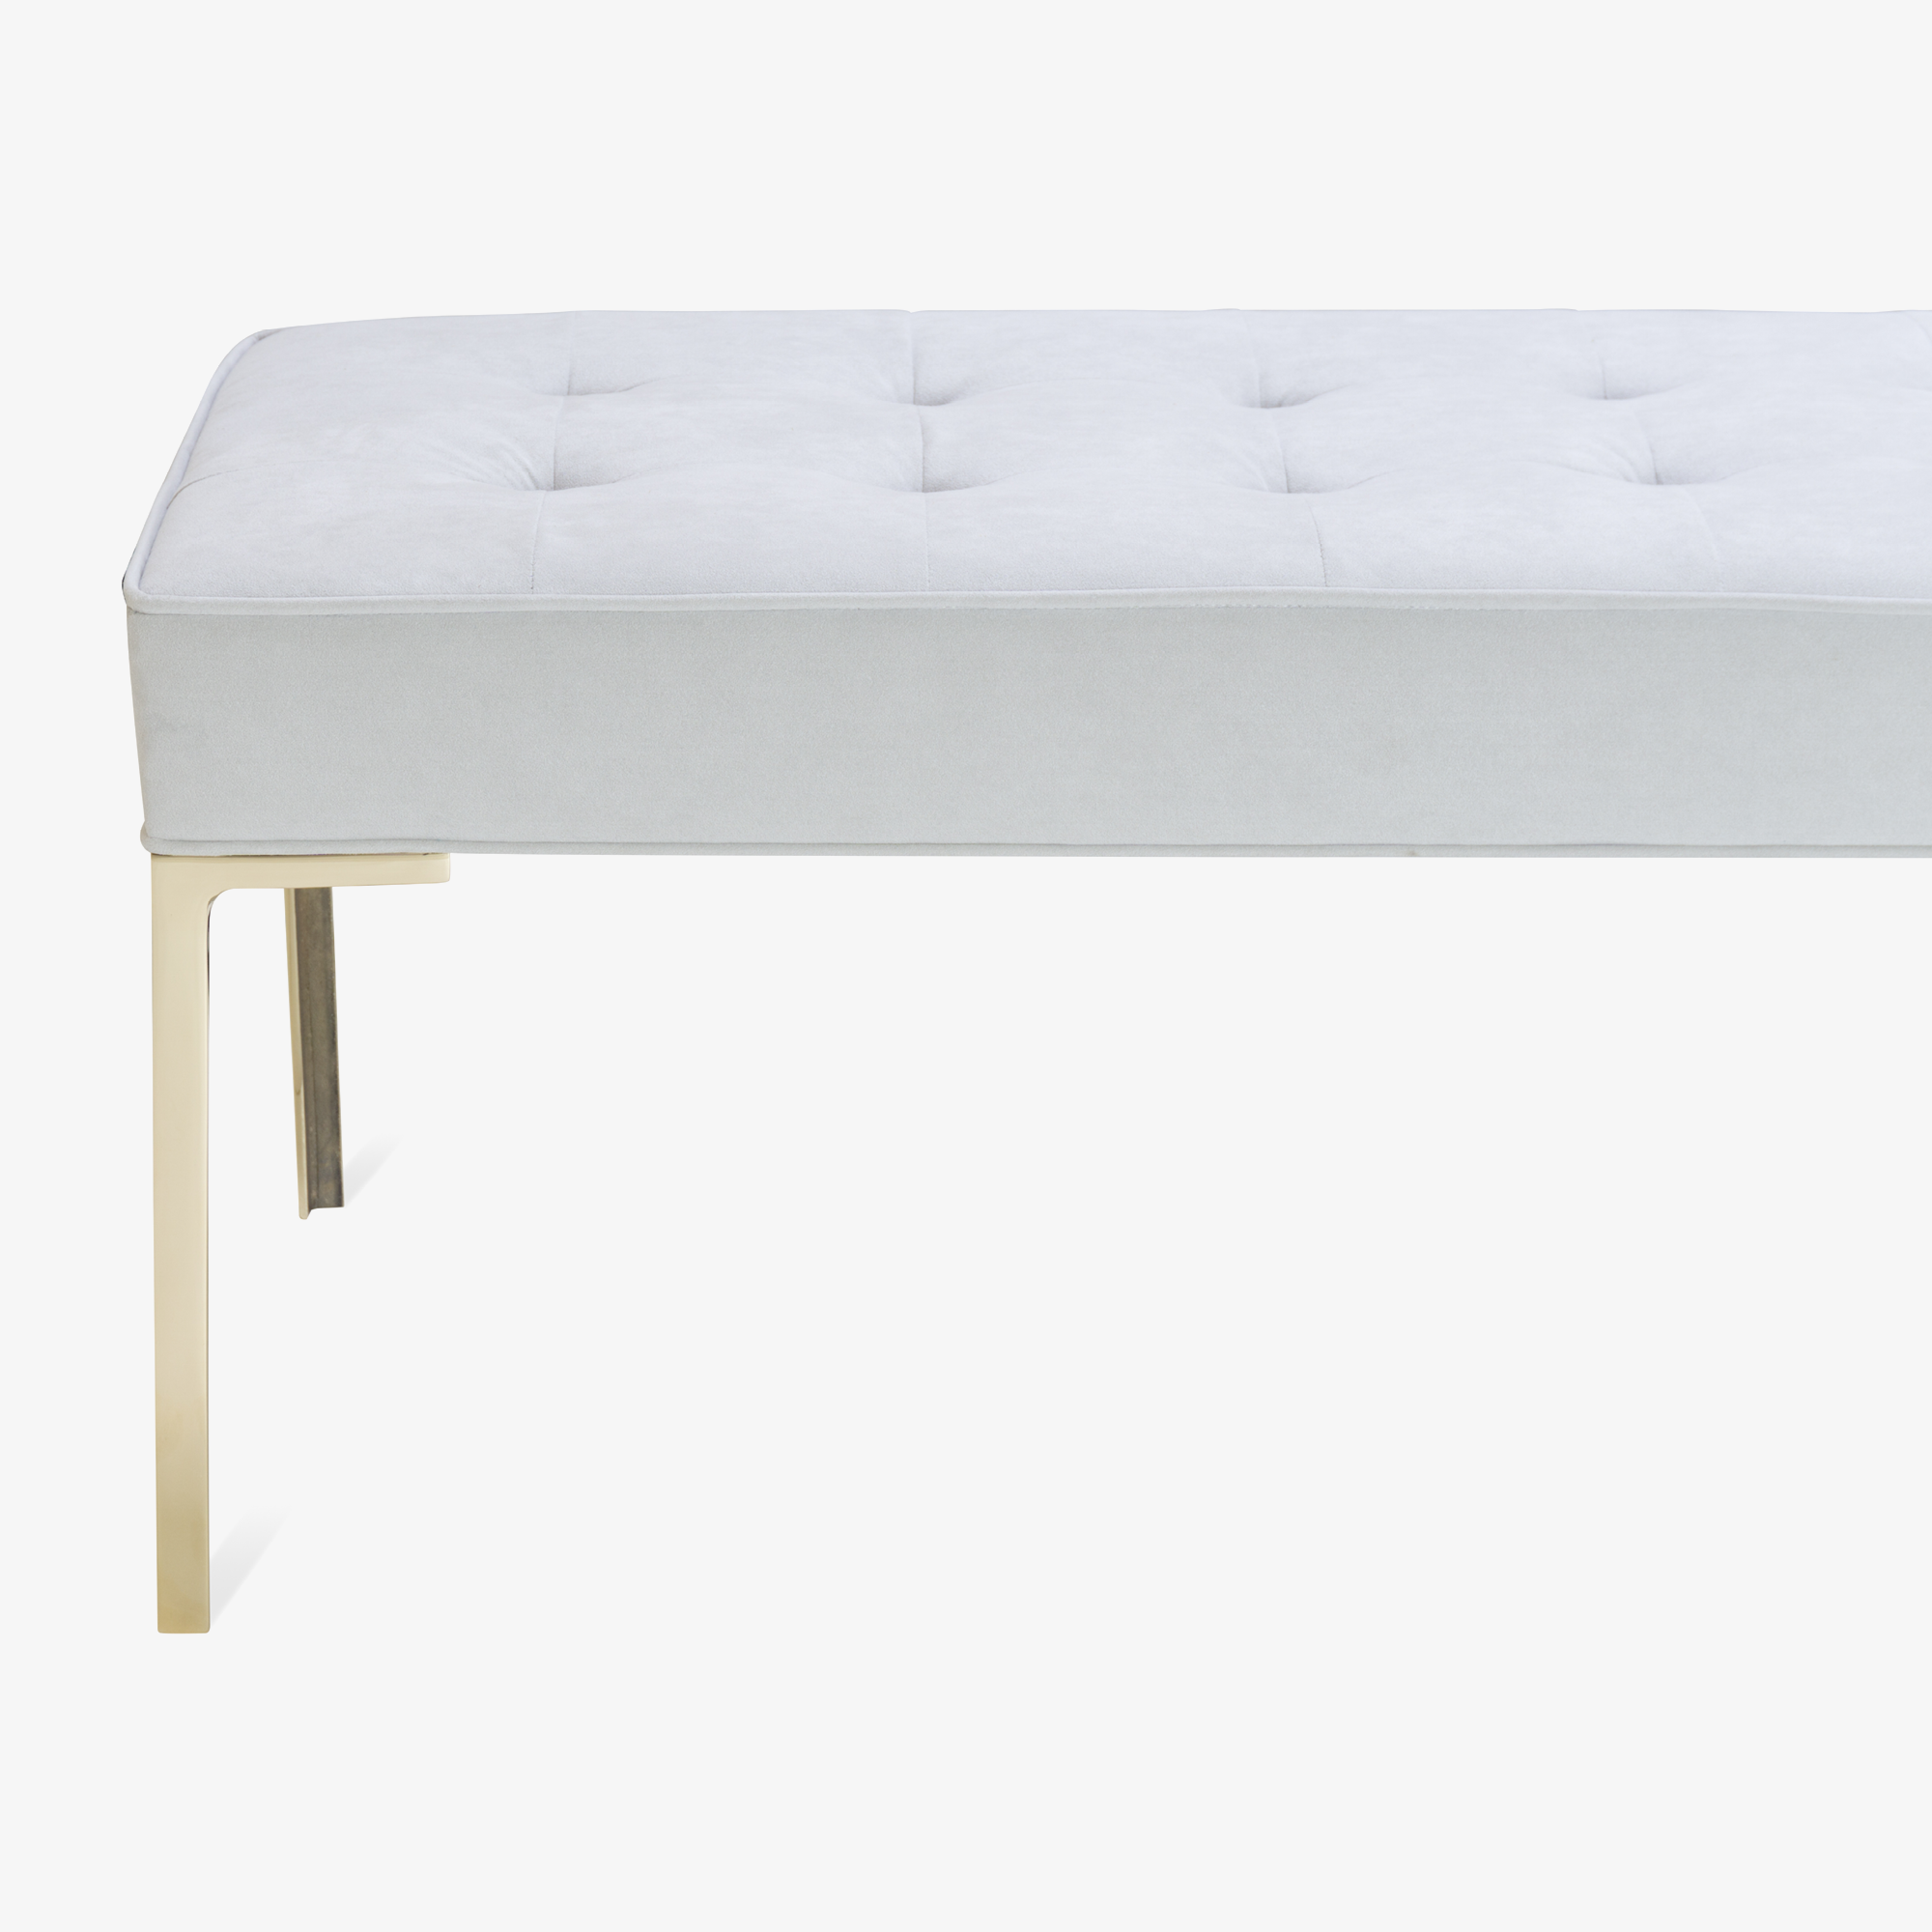 Astor 60%22 Tufted Brass Bench in Dove Luxe Suede (1 of 8)5.png